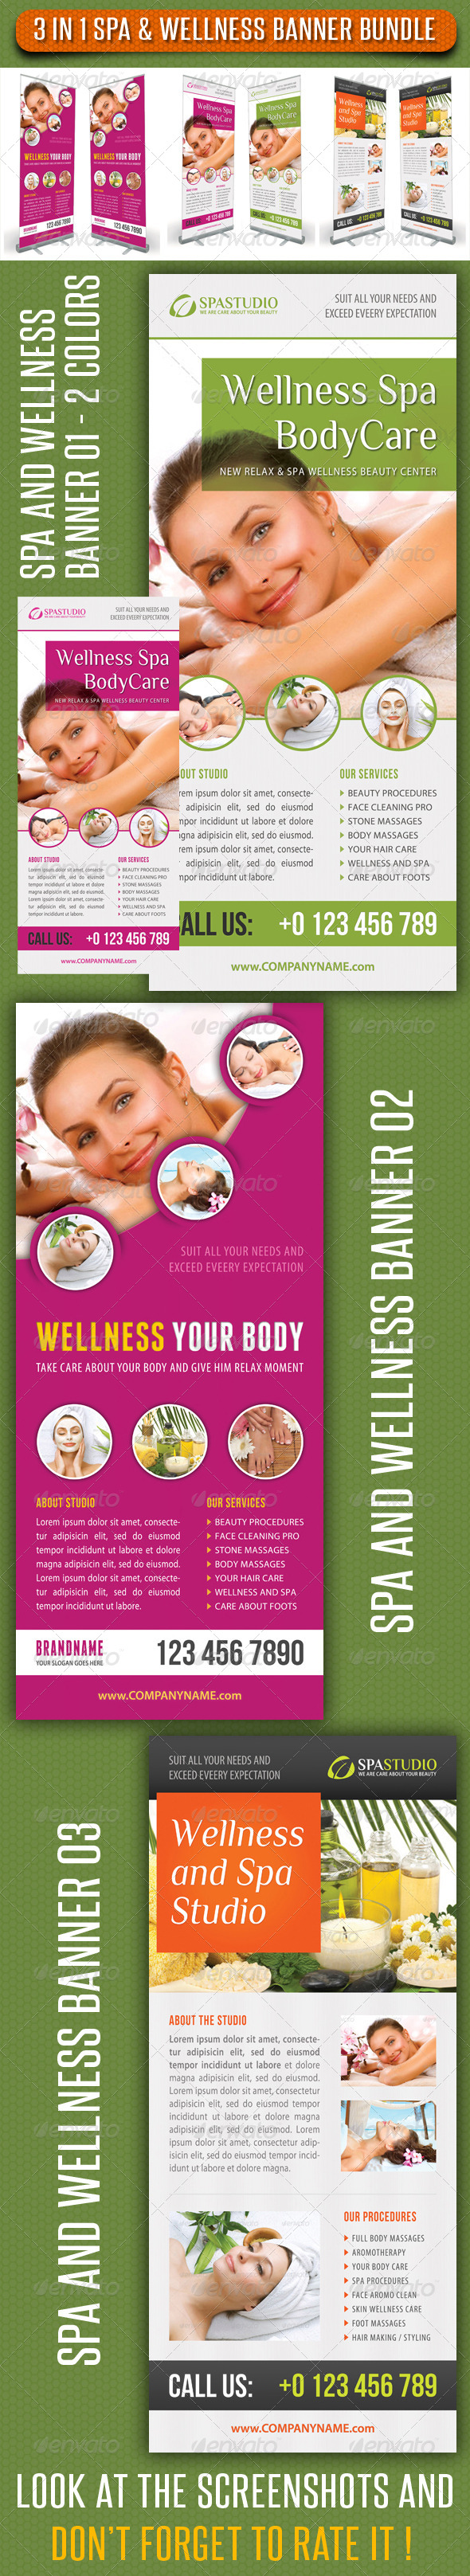 GraphicRiver 3 in 1 Spa Wellness Banner Bundle 04 7351730